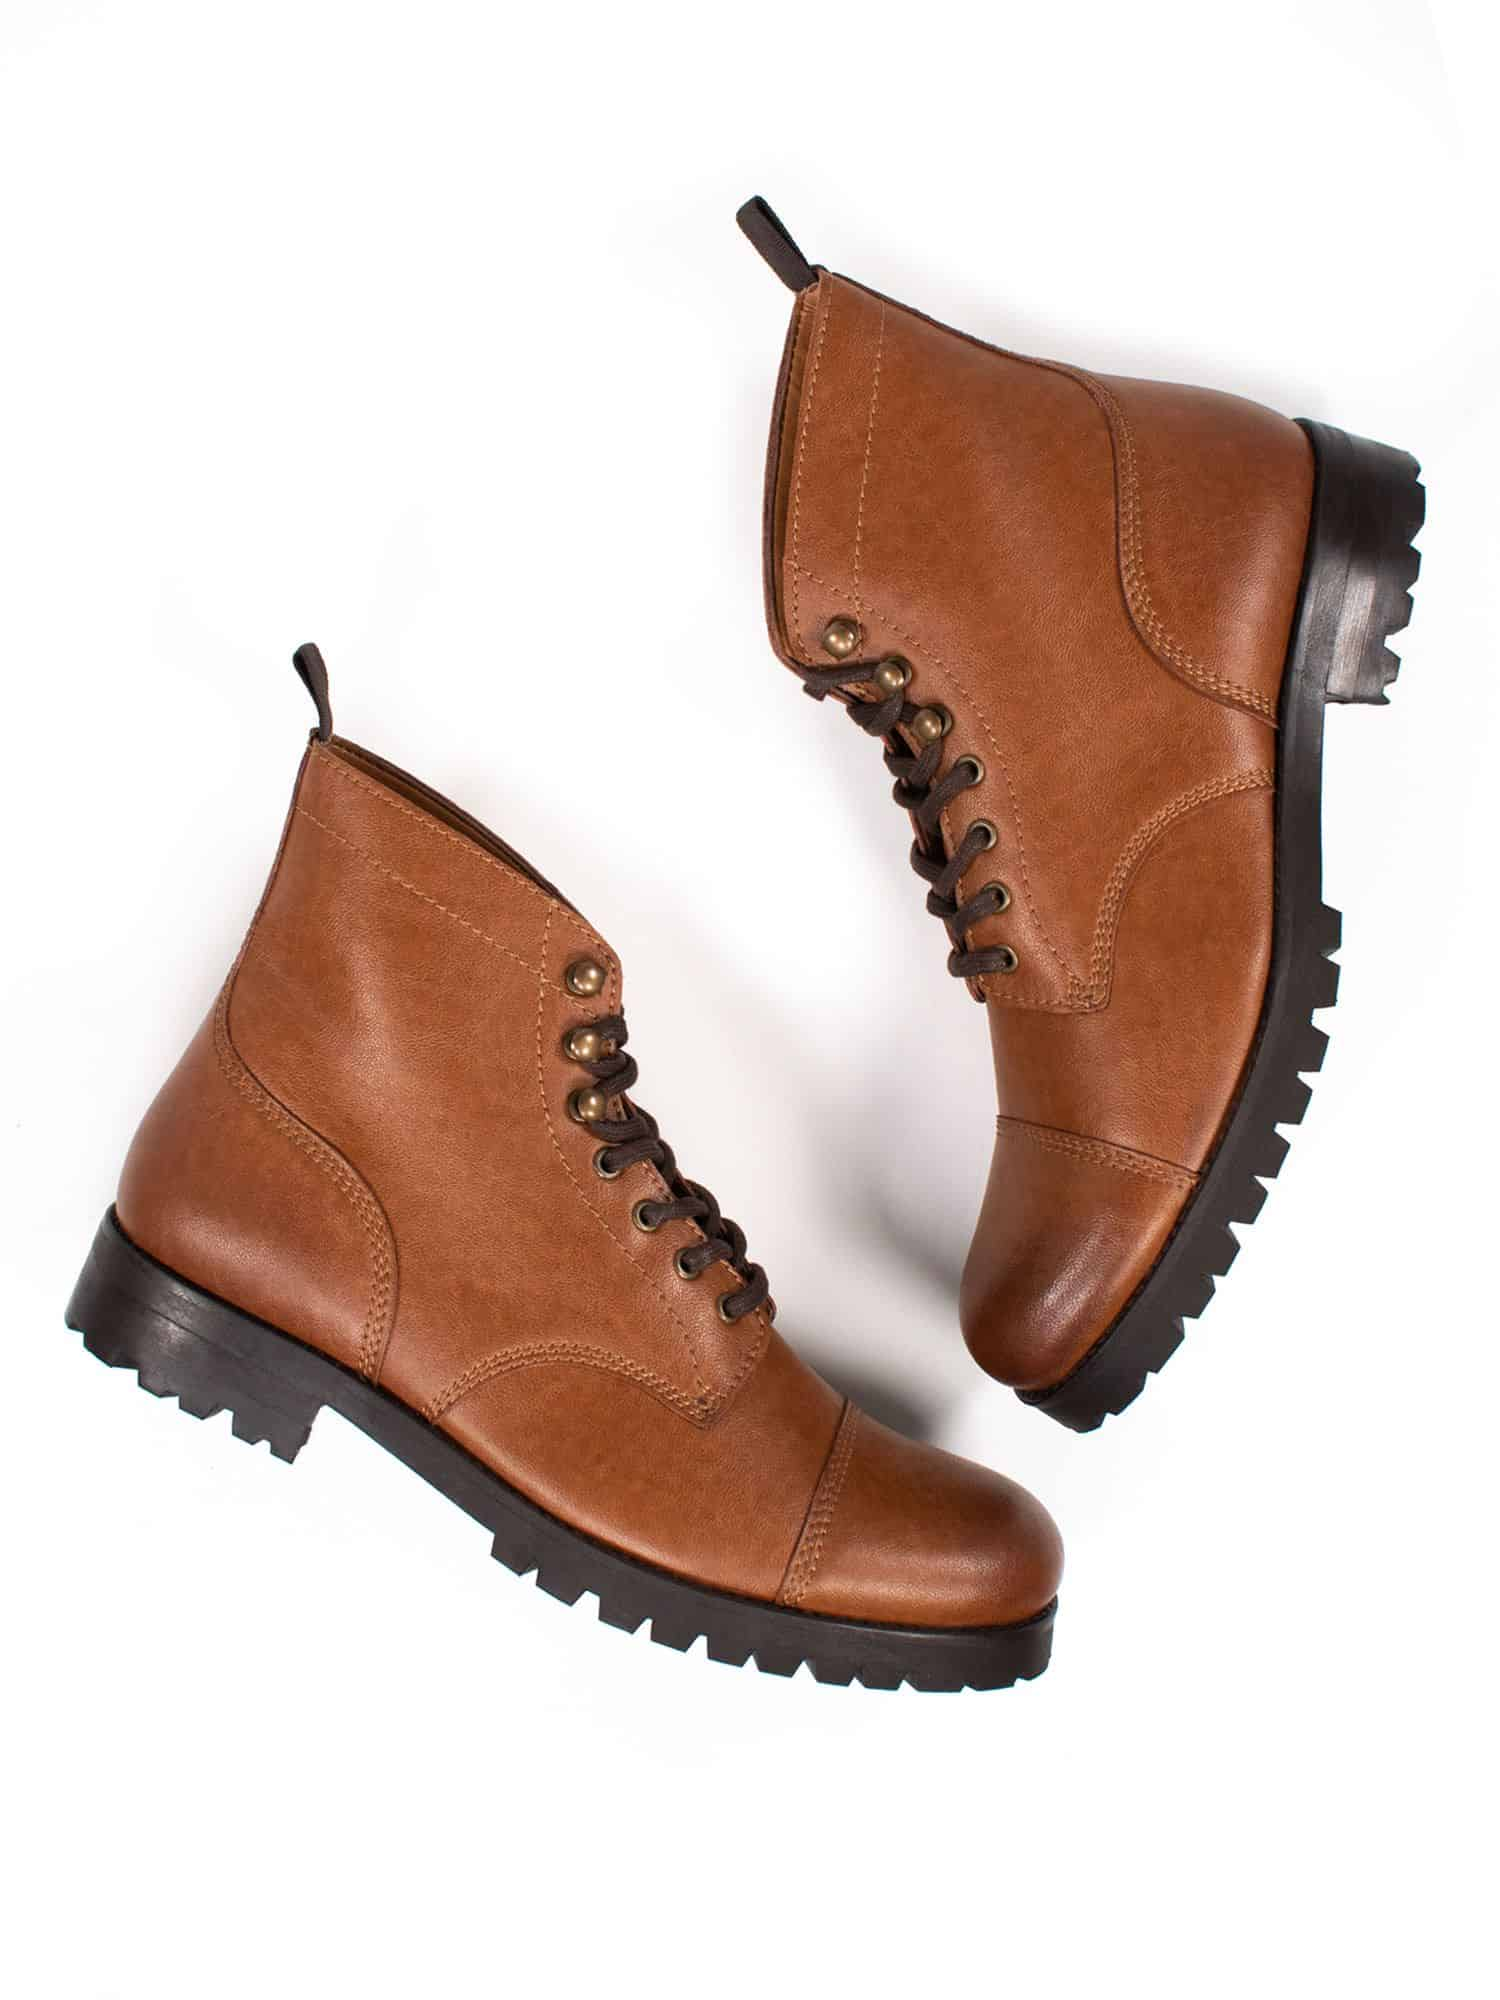 will's vegan work boots with a rubber sole